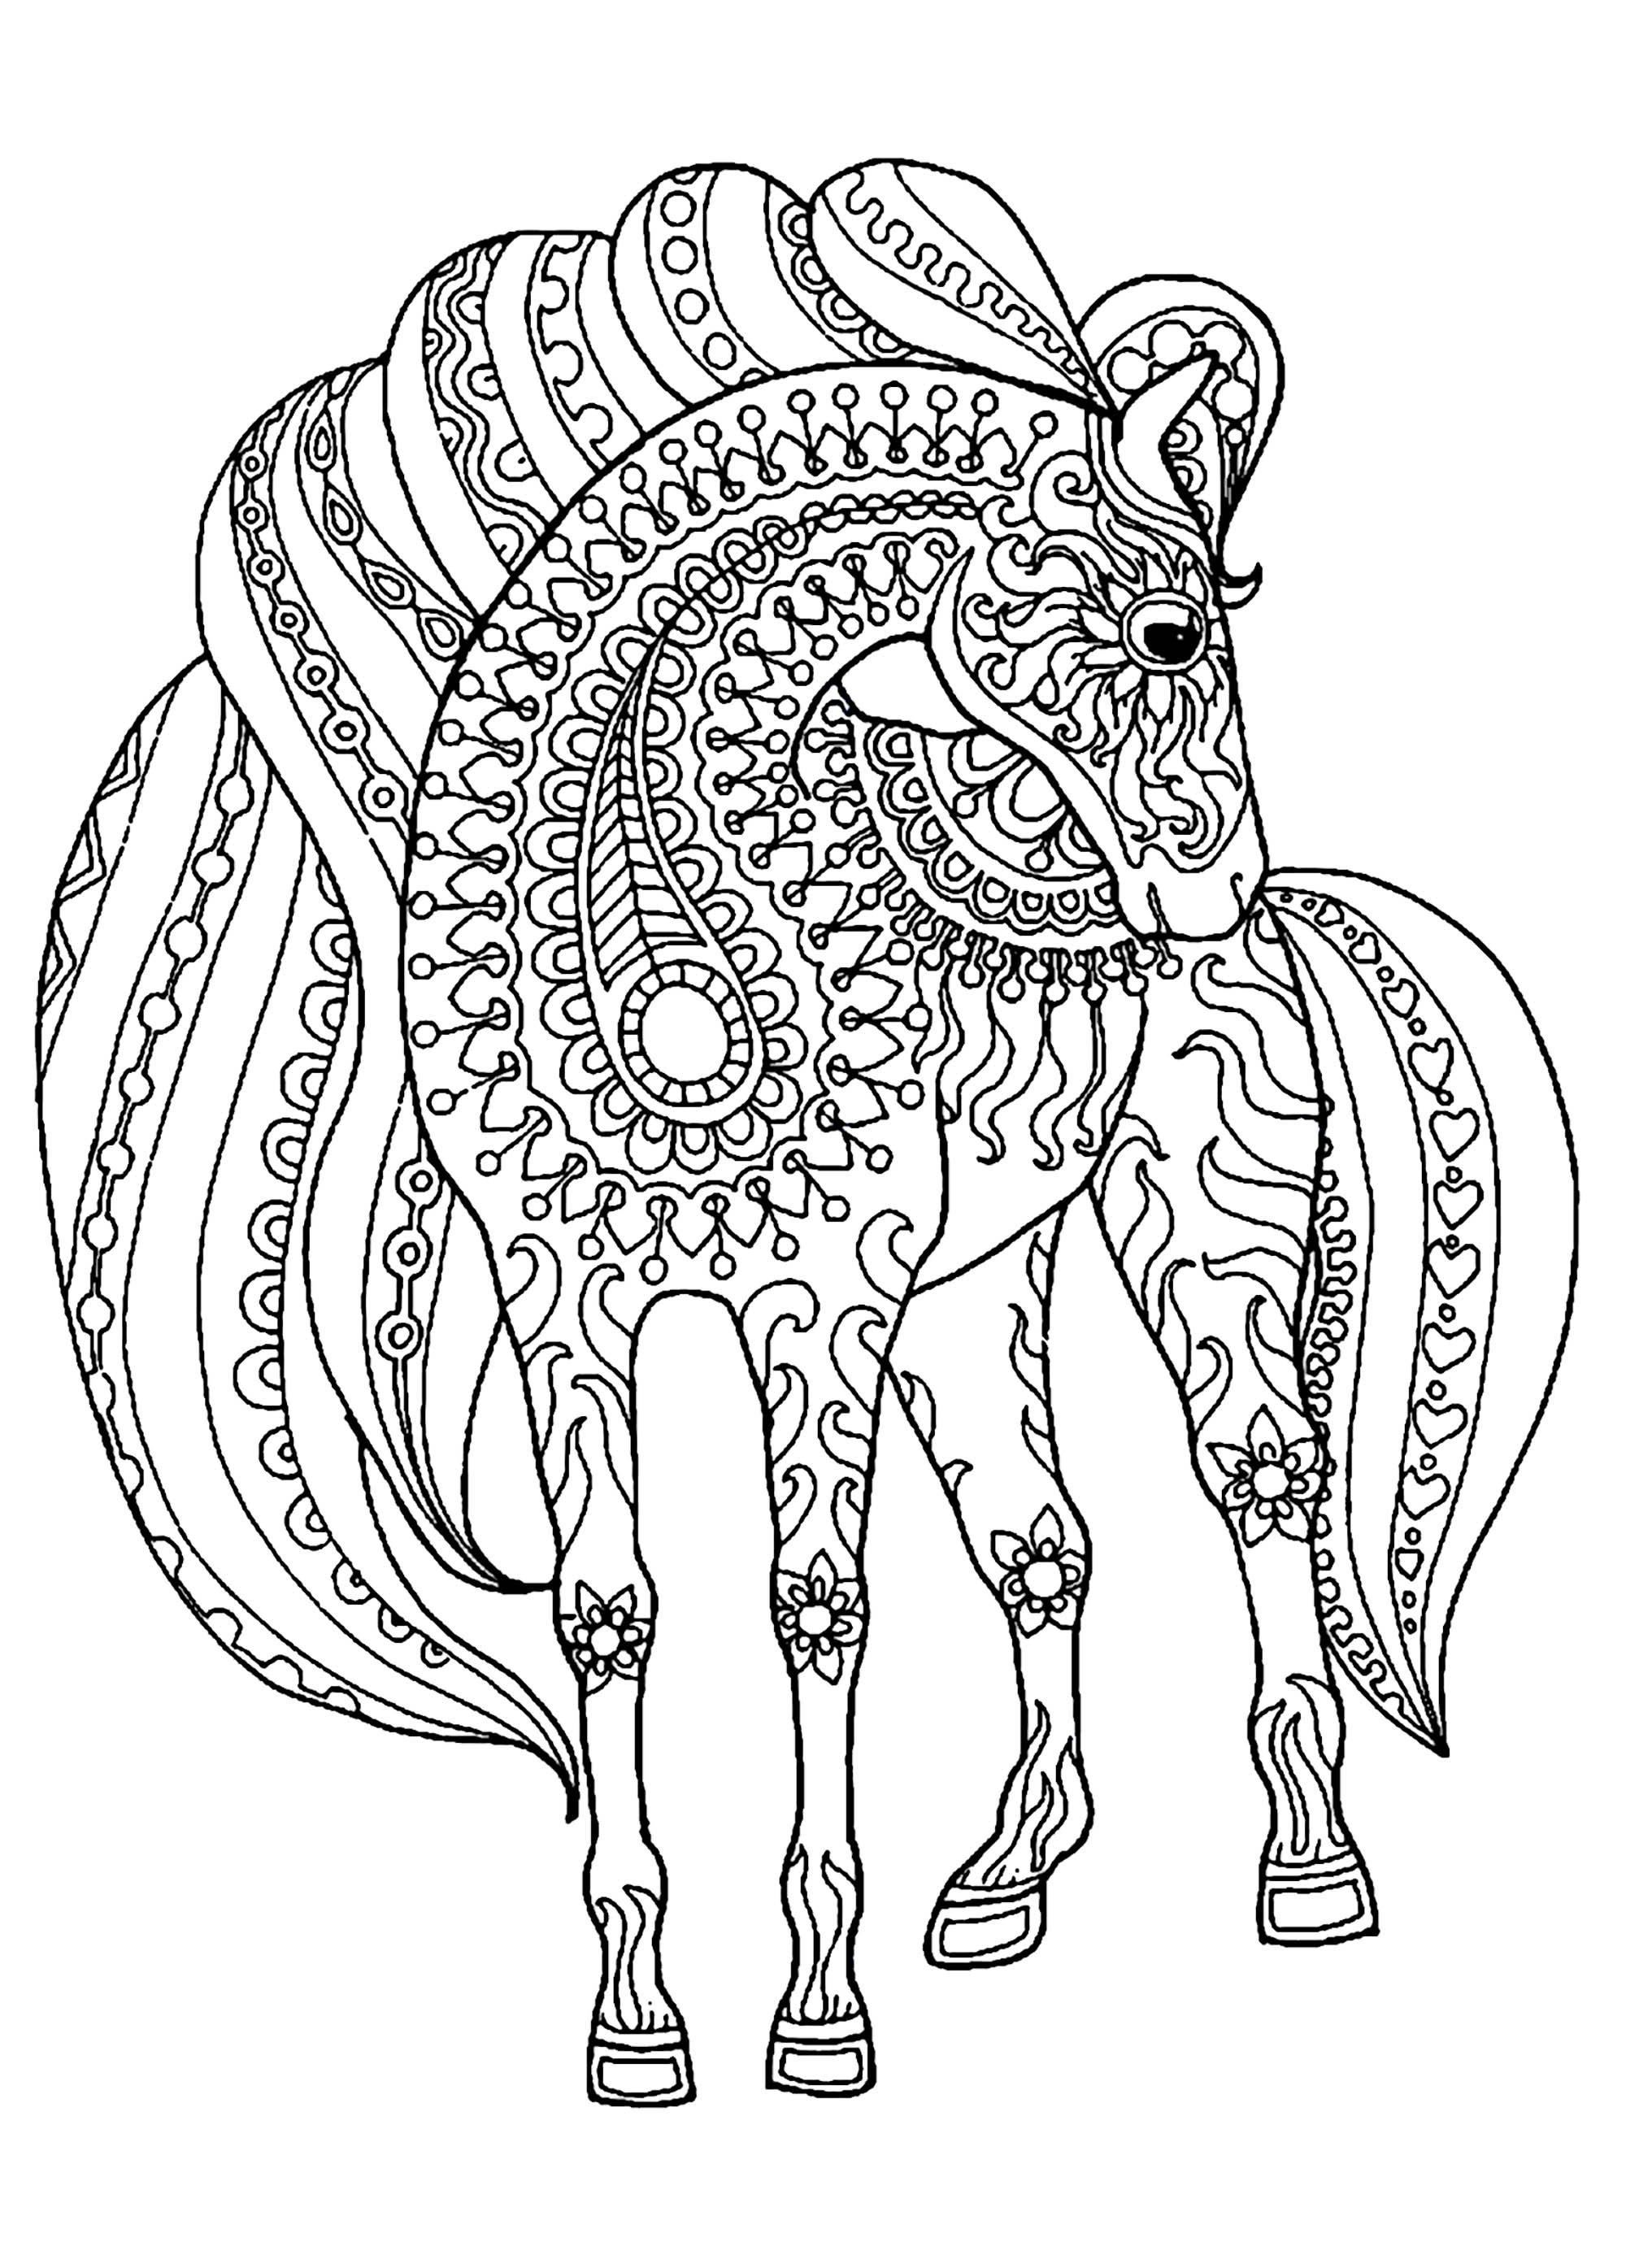 Horse Simple Zentangle Patterns Horses Coloring Pages For